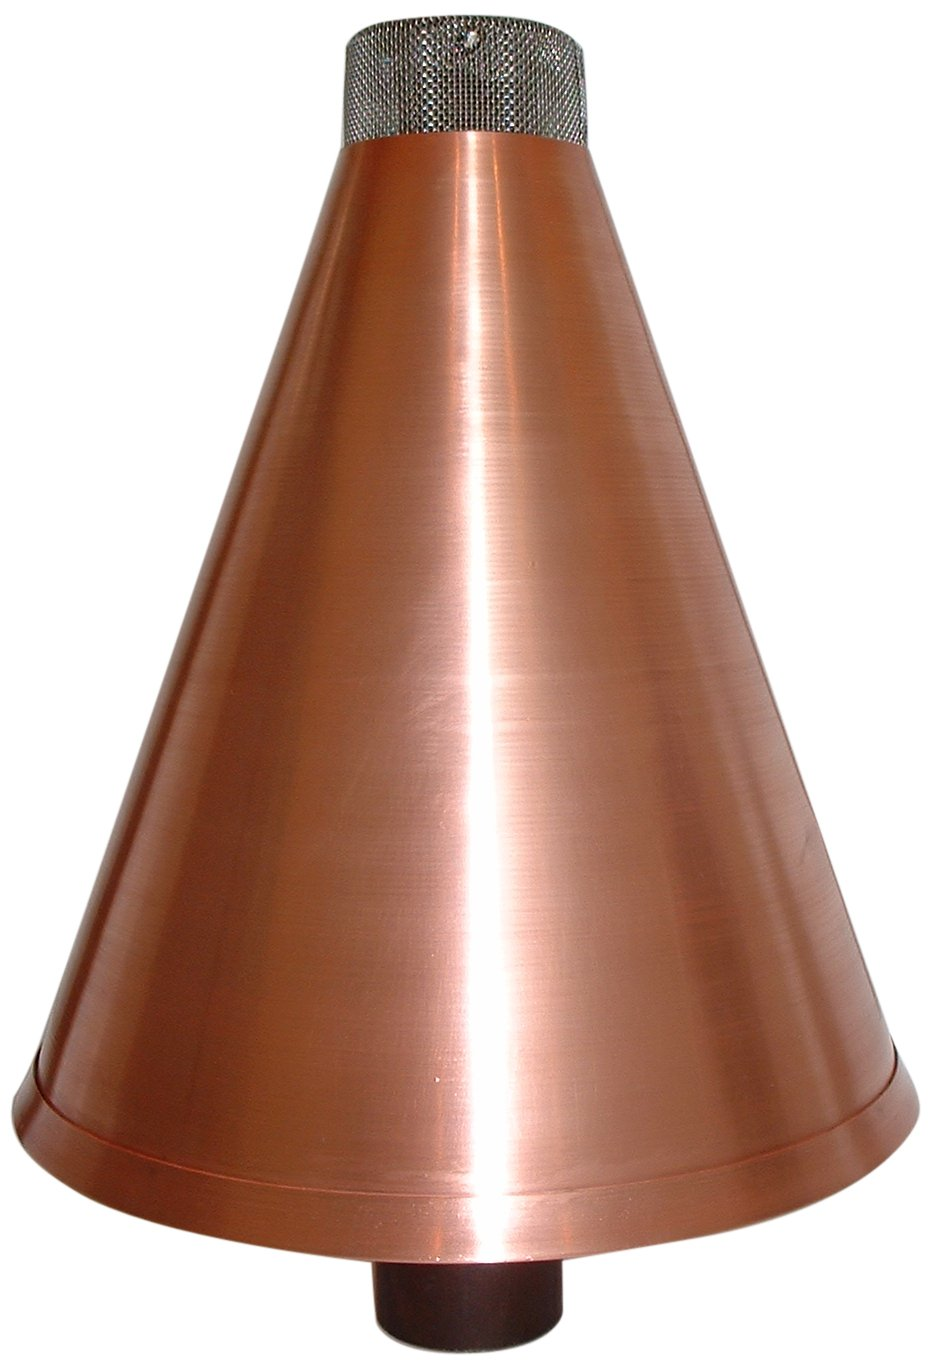 Burnaby Manufacturing Propane Tiki Torch Cone, 1-Inch, Copper Color